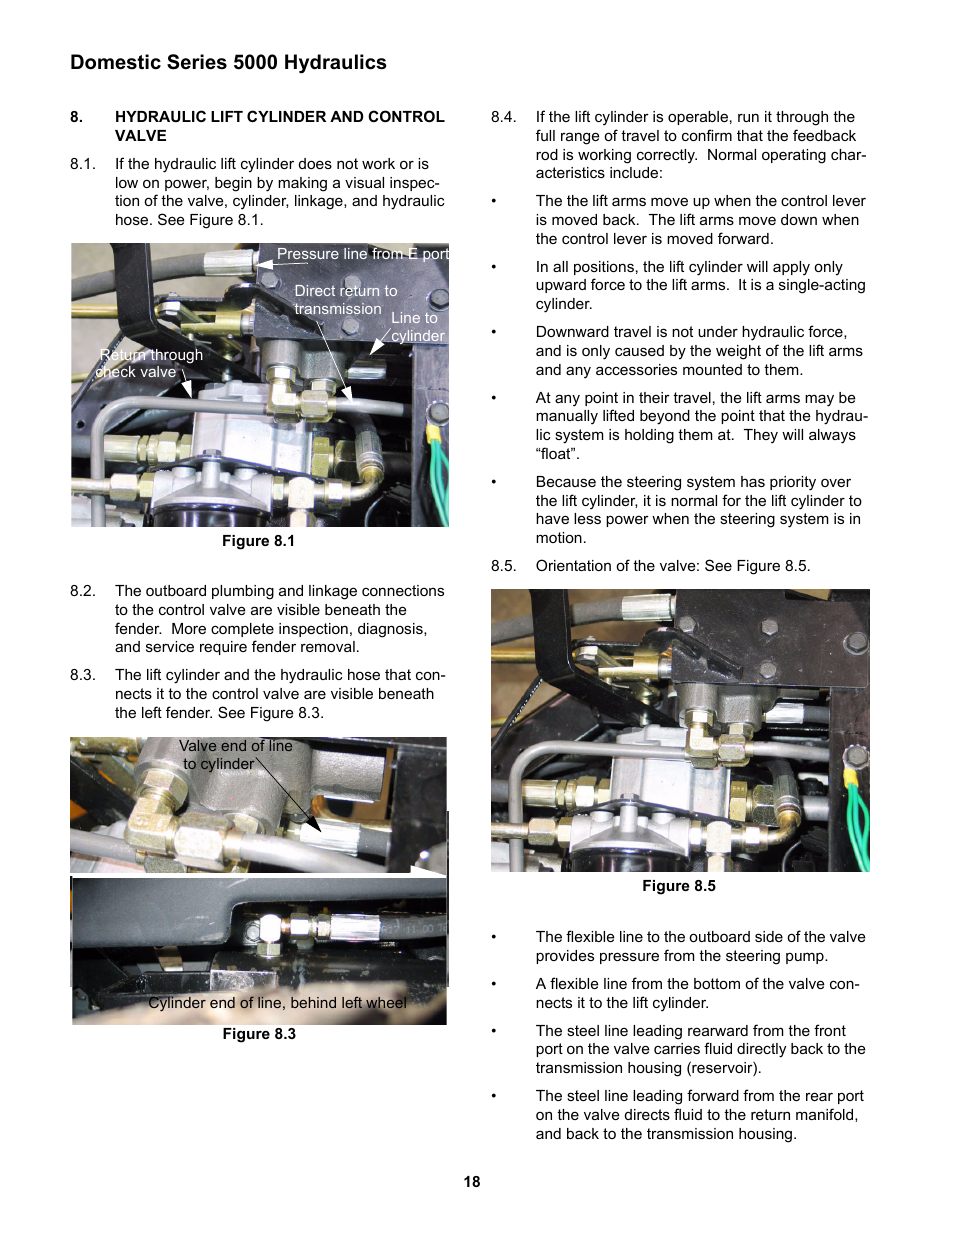 Hydraulic lift cylinder and control valve, Domestic series 5000 hydraulics  | Cub Cadet 5000 Series User Manual | Page 22 / 96